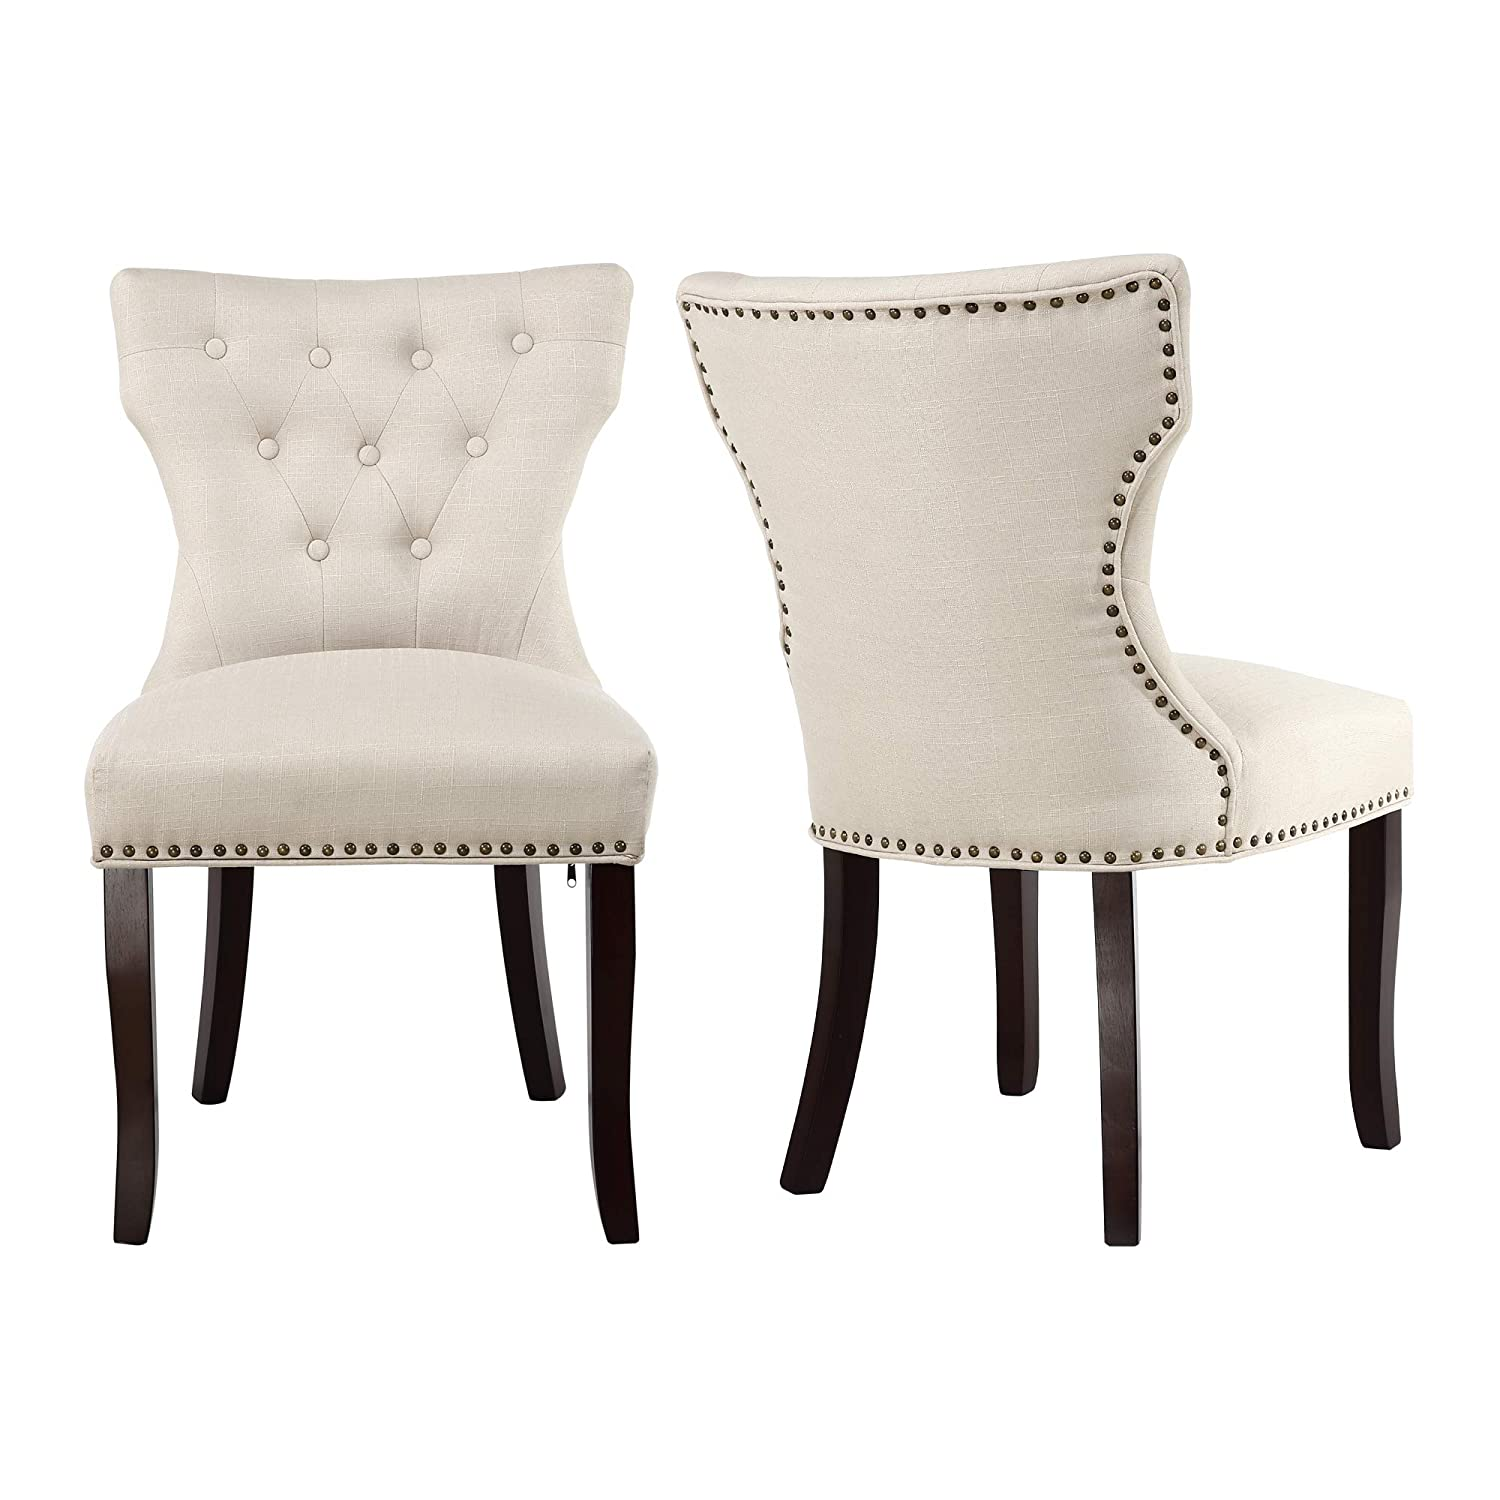 LSSBOUGHT Set of 2 Fabric Dining Chairs Leisure Padded Chairs with Brown Solid Wooden Legs,Nailed Trim,Beige